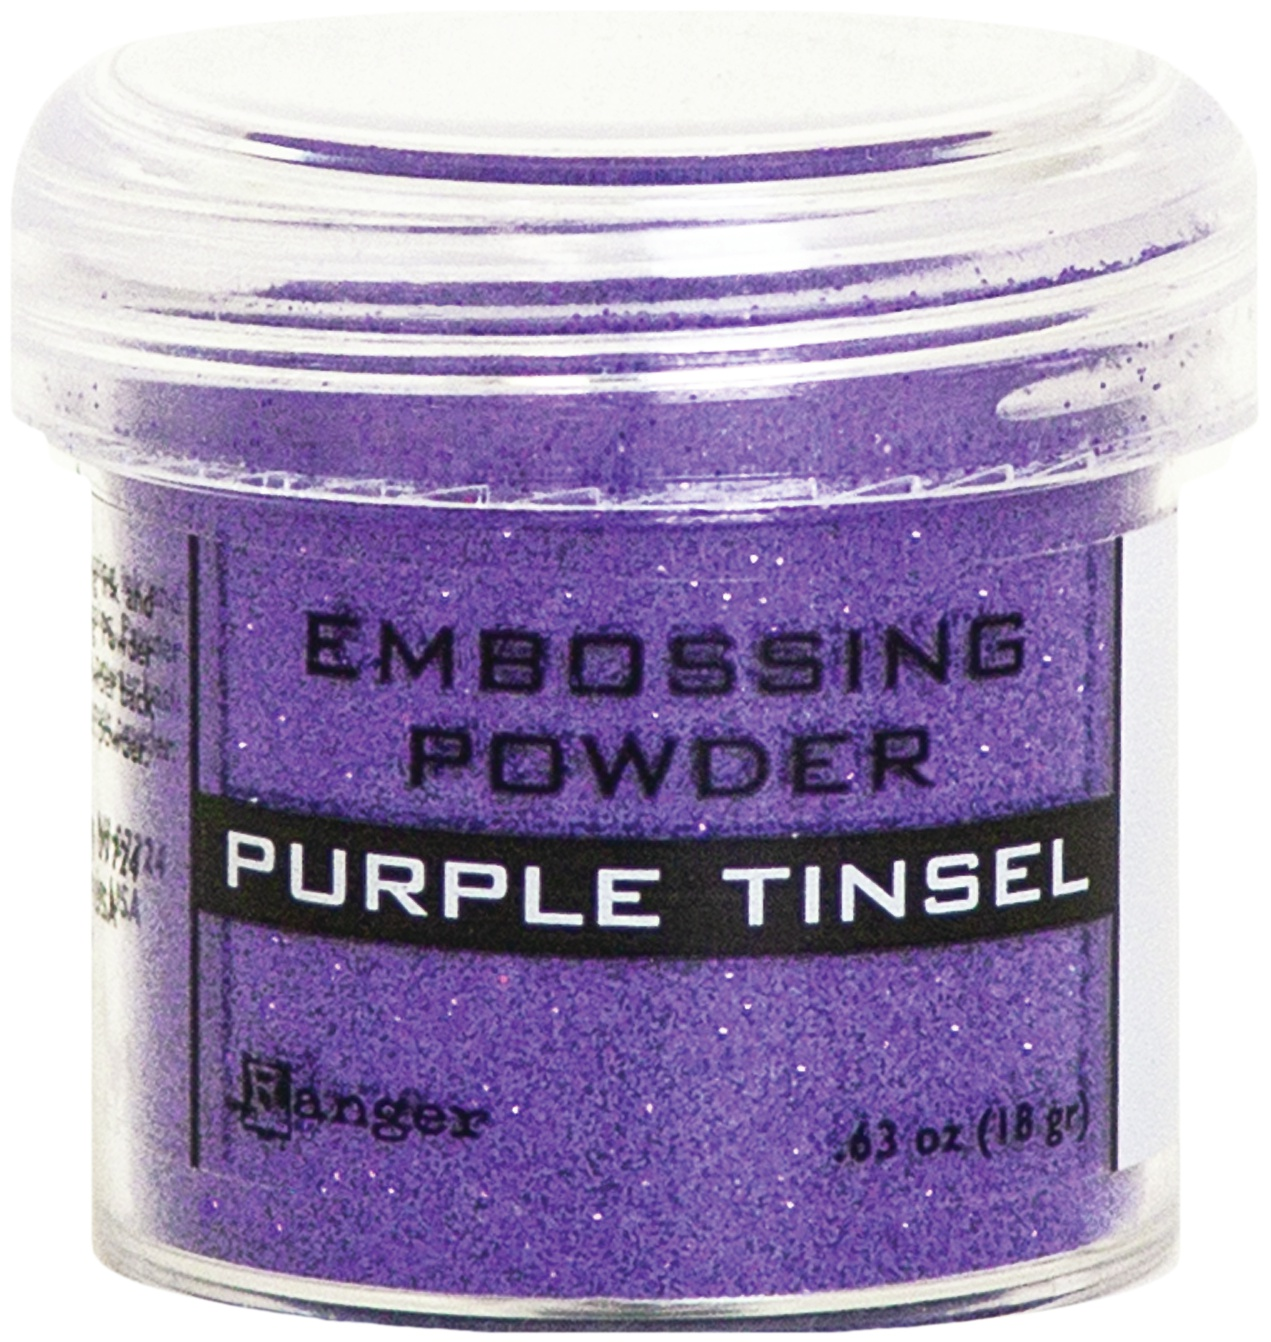 PURP TINSL-EMBOSSING POWDER